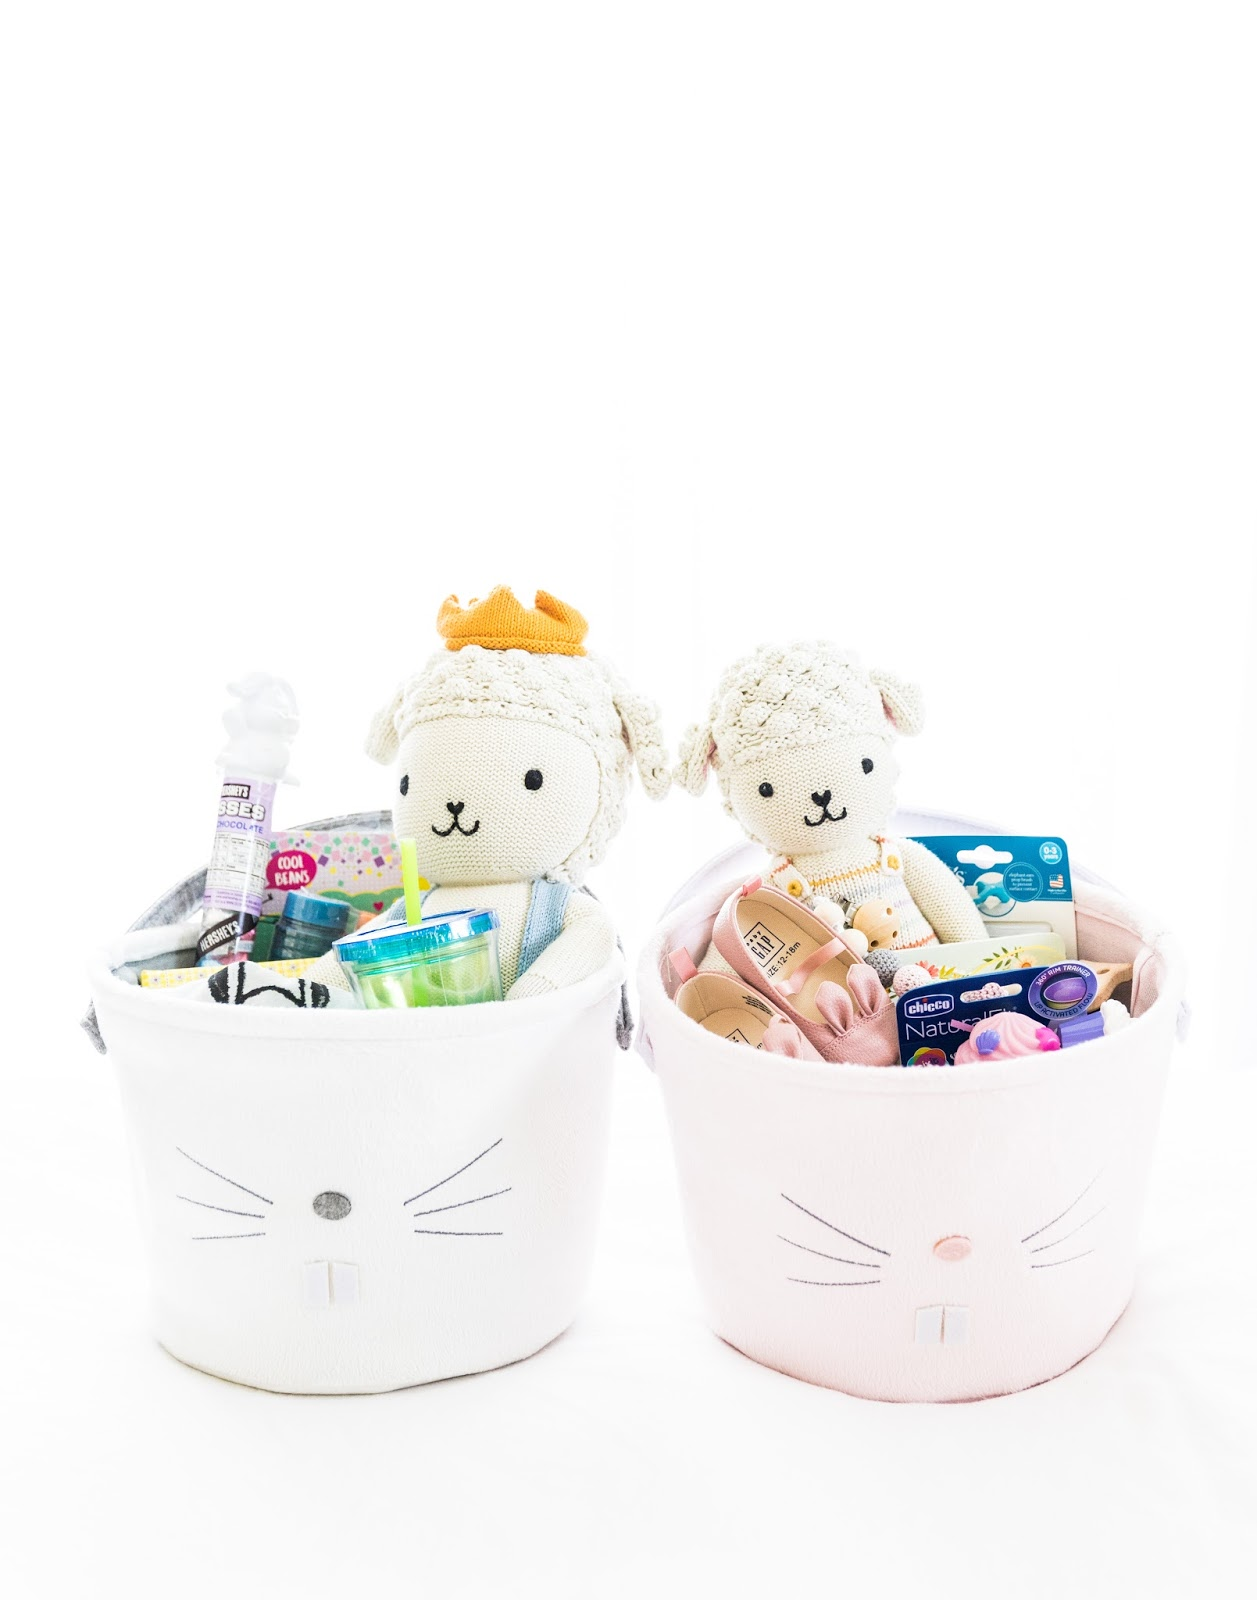 Easter baskets for baby and toddler sweet september easter baskets for baby and toddler this post contains affiliate links this means if you click andor make a purchase through these links negle Image collections